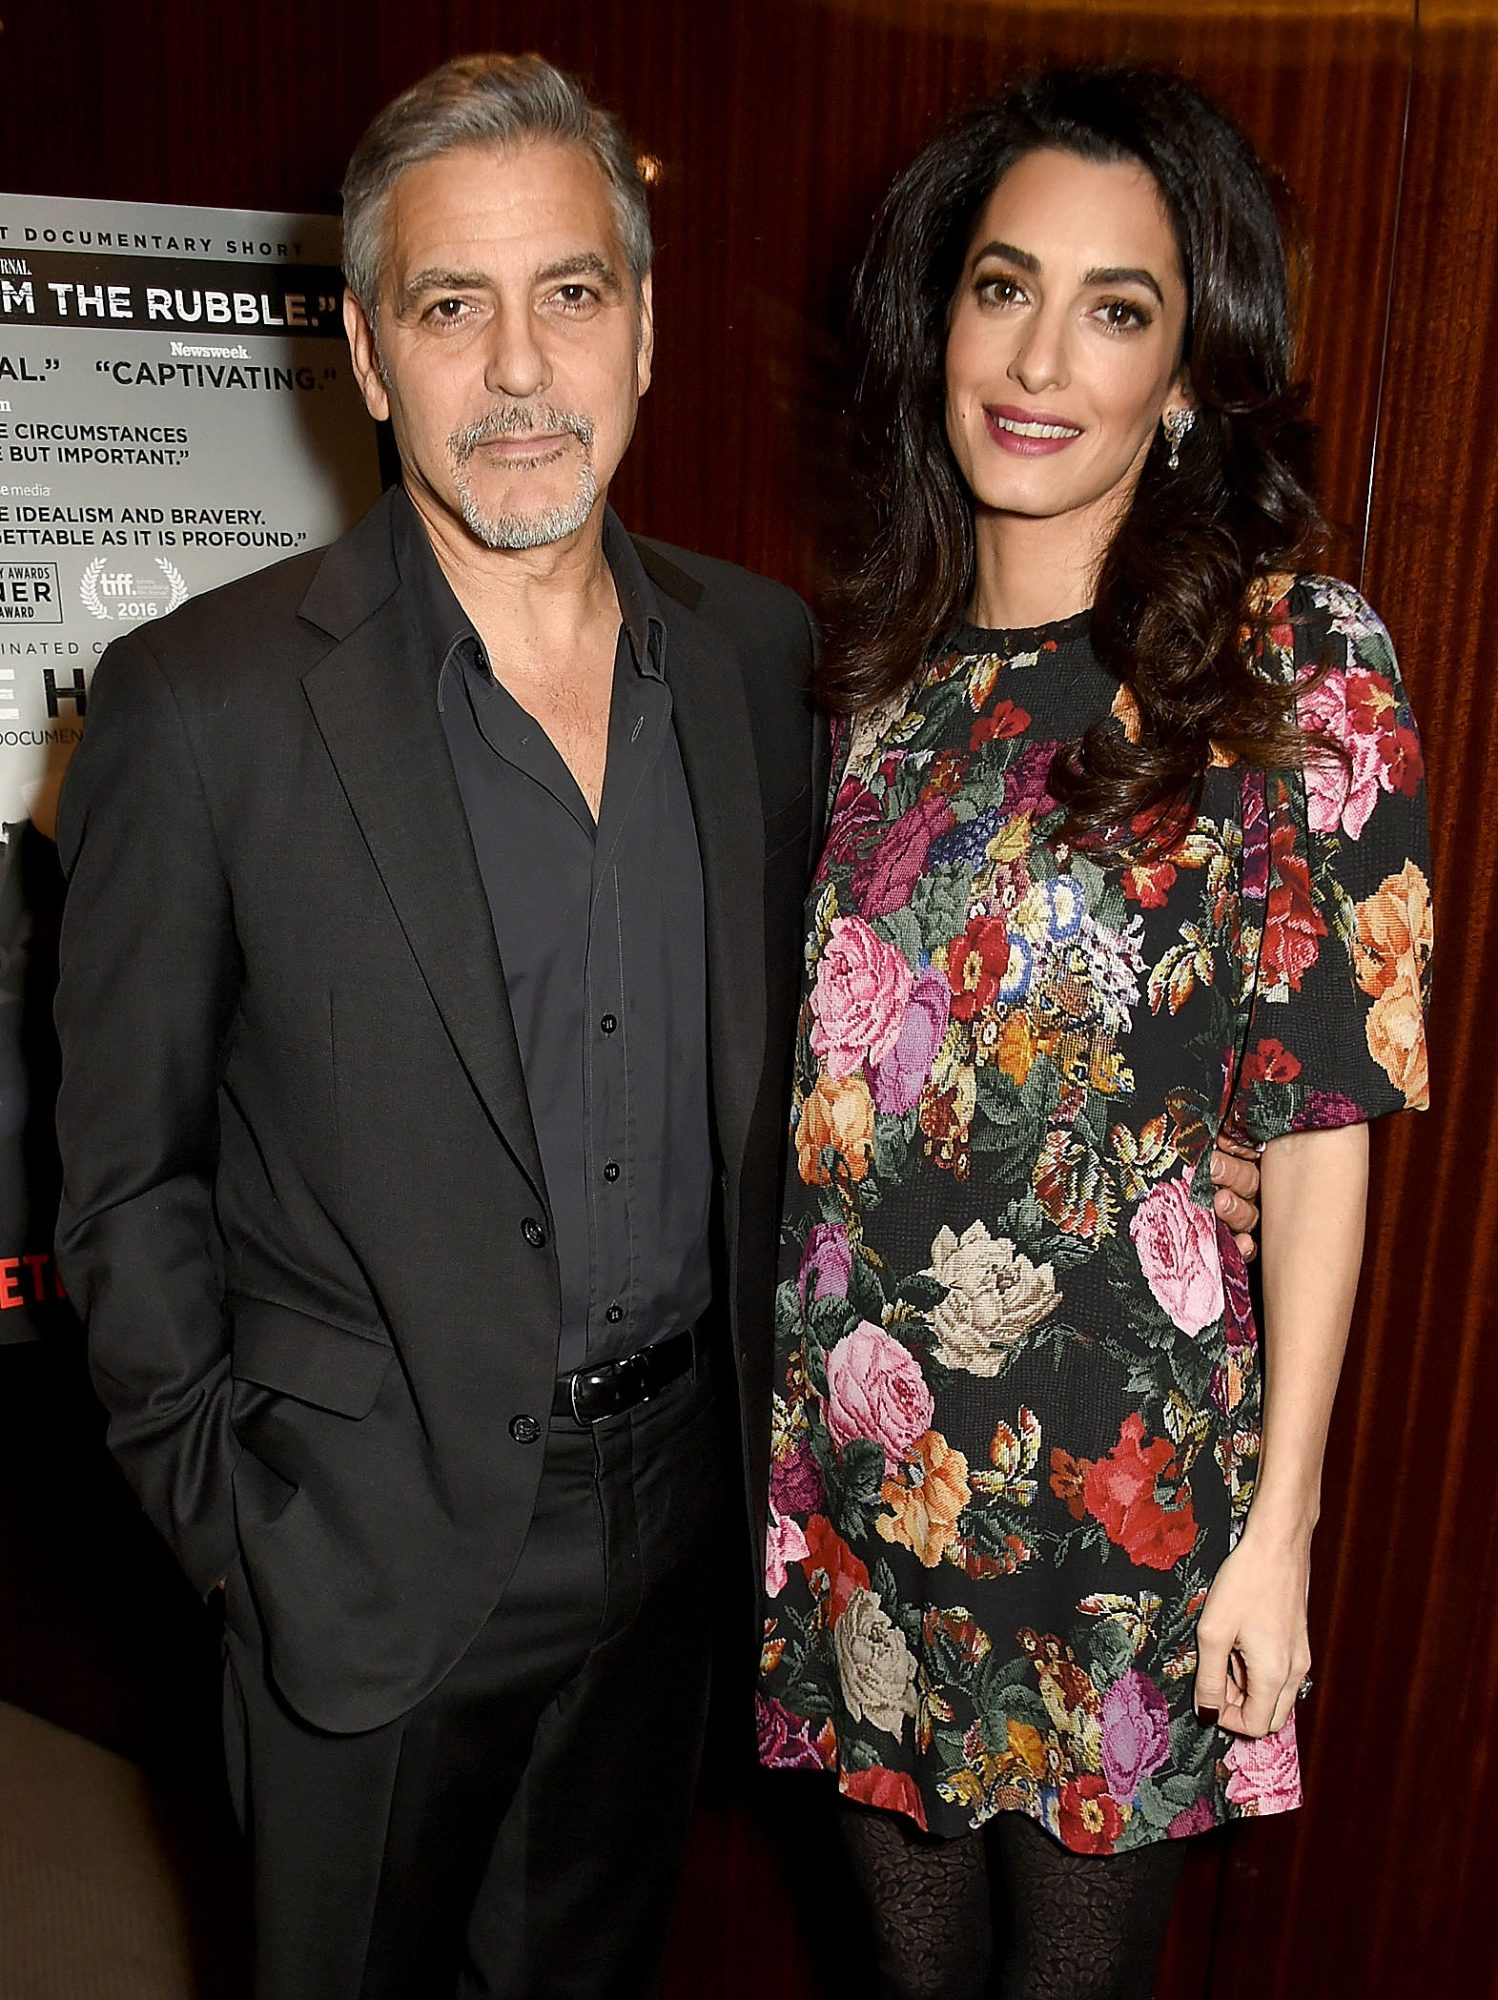 LONDON, ENGLAND - JANUARY 09: George and Amal Clooney attend the Netflix special screening and reception of The White Helmets hosted by The Clooney Foundation For Justice with George and Amal Clooney, at the Bvlgari Hotel on January 9, 2017 in London, England. (Photo by David M. Benett/Dave Benett/Getty Images for Netflix ) *** Local Caption *** George Clooney;Amal Clooney